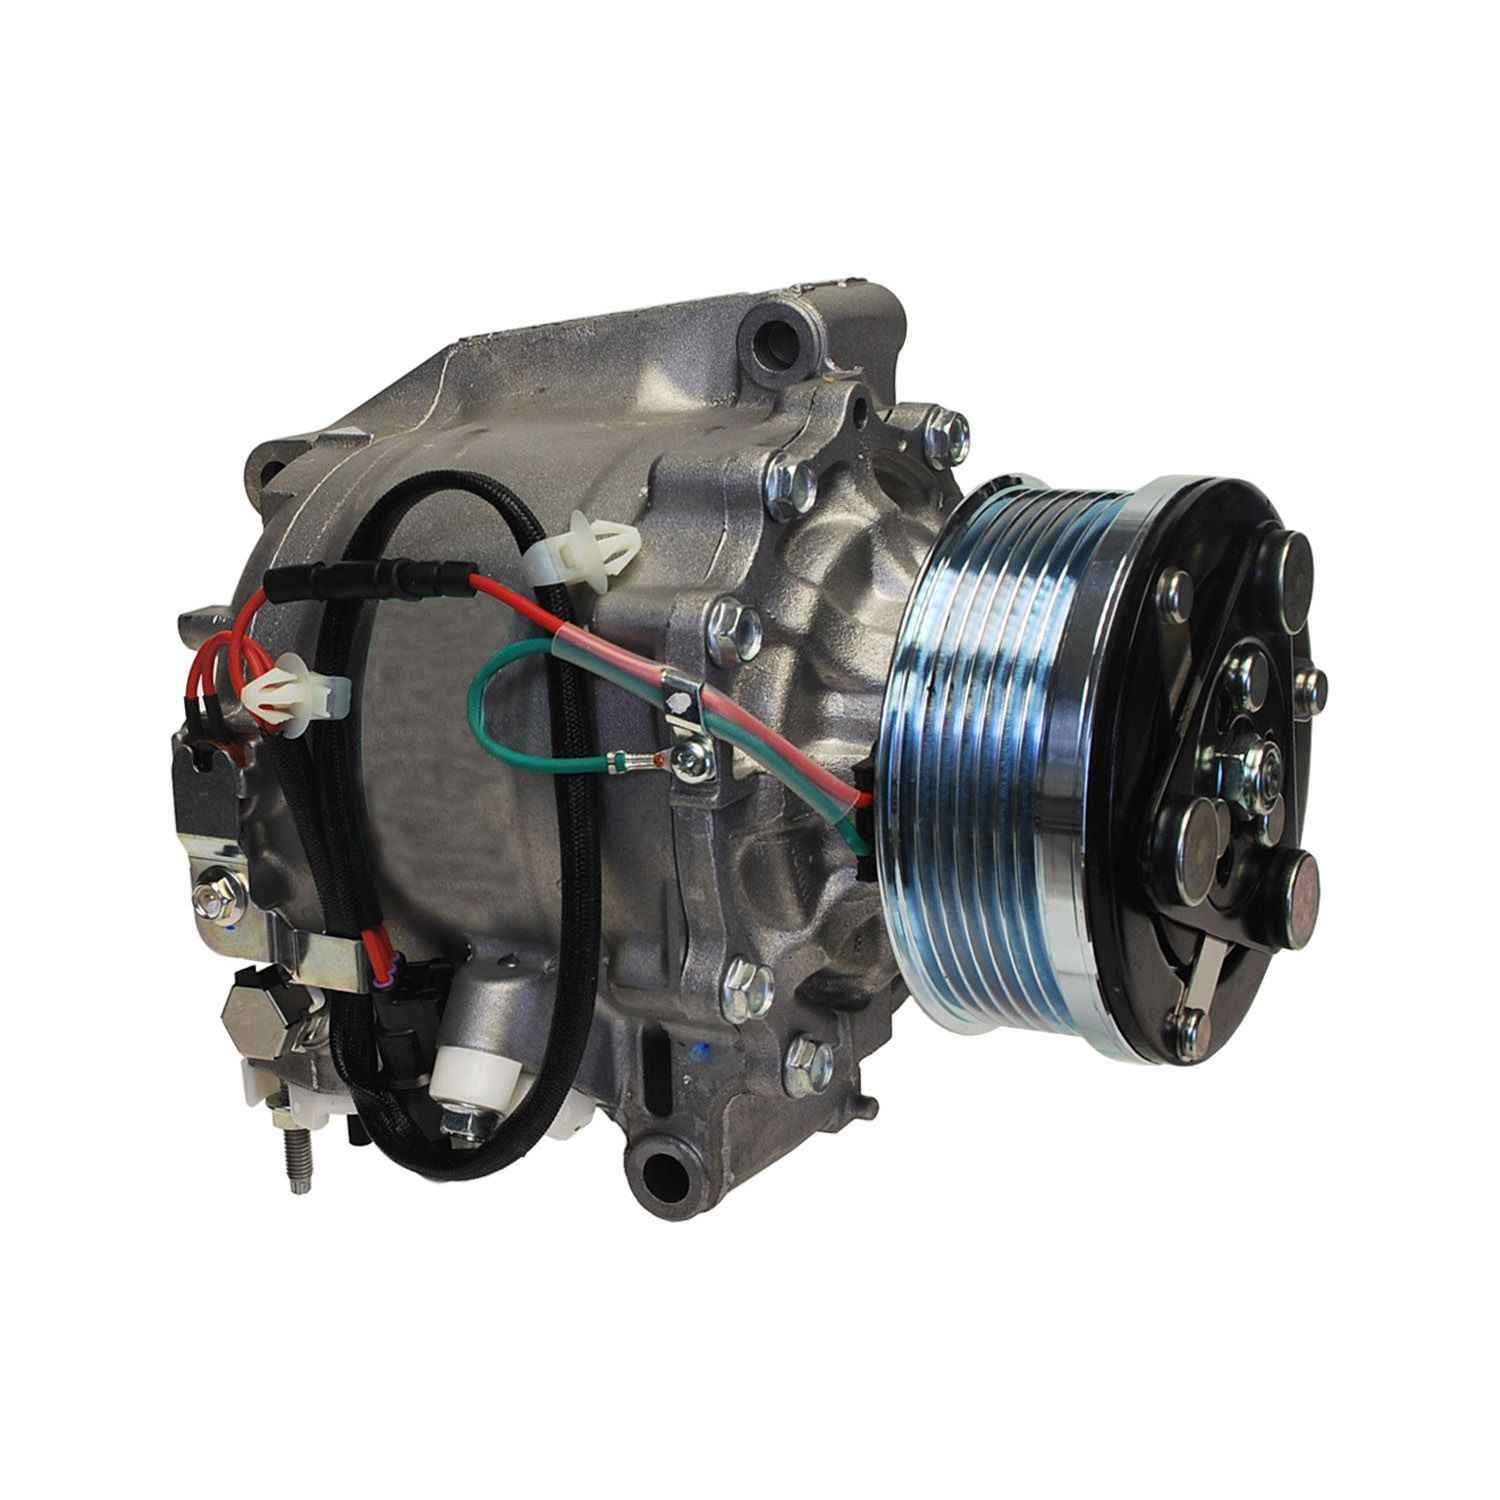 Honda Civic Ac Compressor Model Oem Oes Compressors For 2007 A C Wiring Diagram 02 Not Engaging Lx